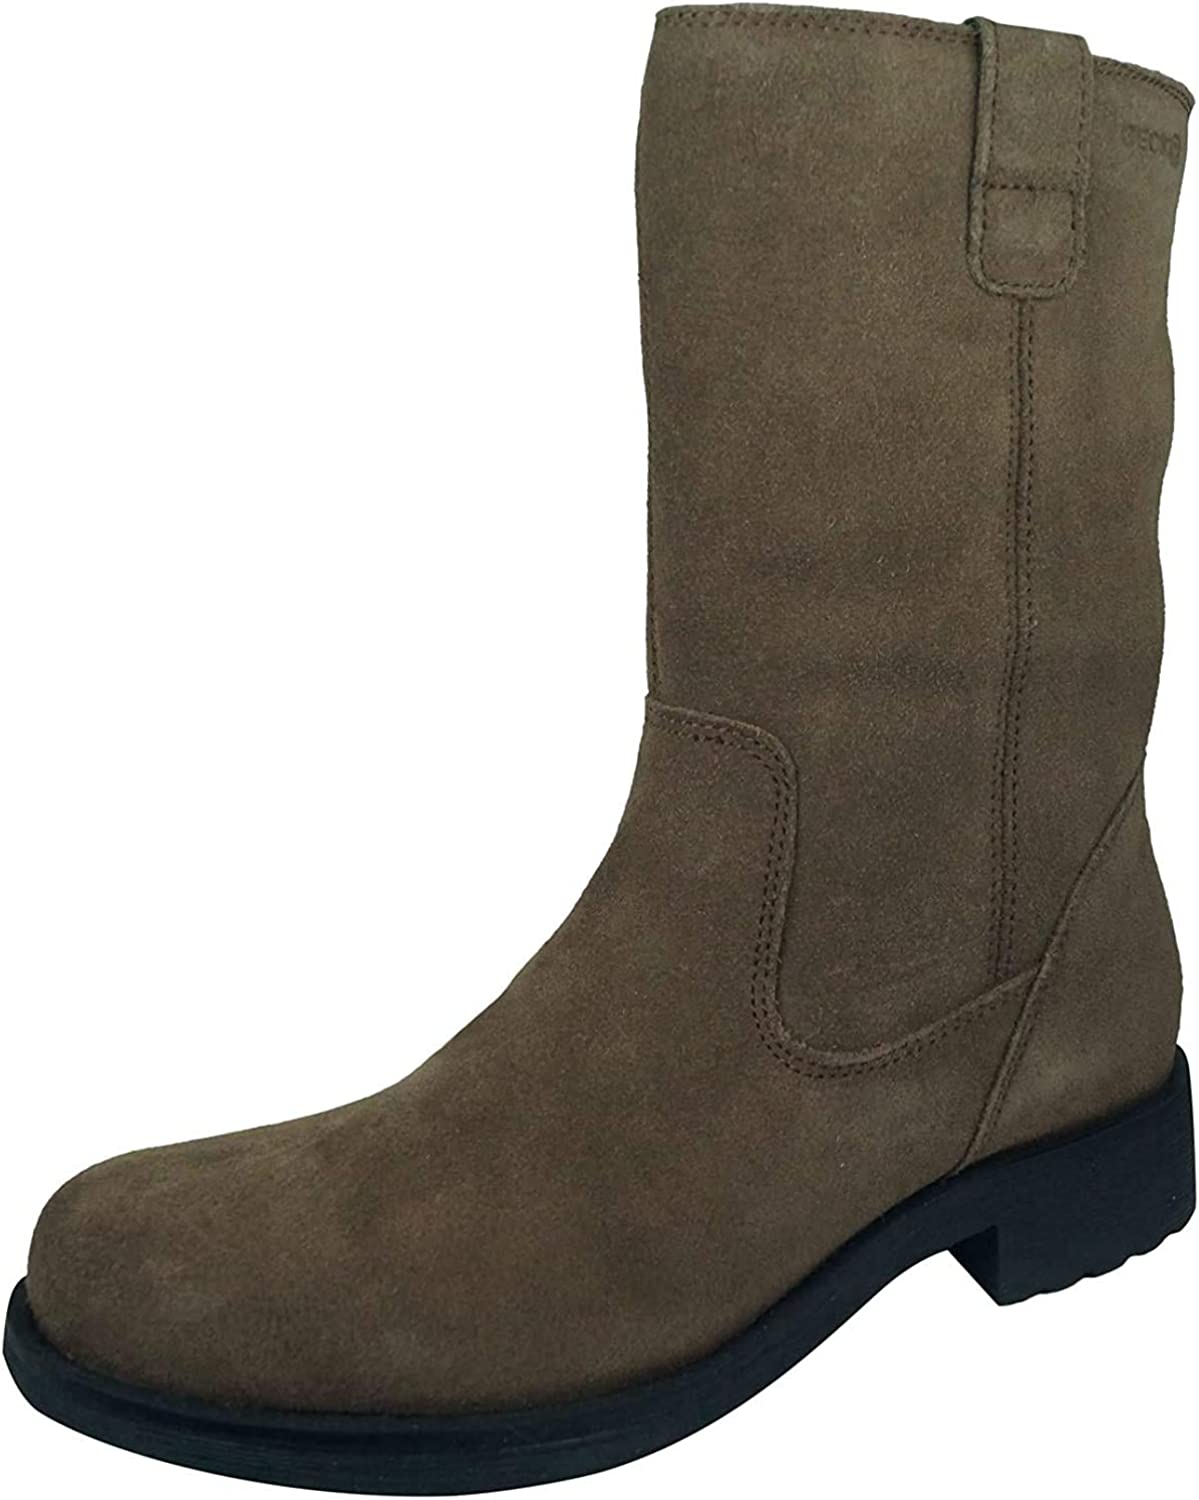 Geox D Rawelle B Womens Suede Mid Boots